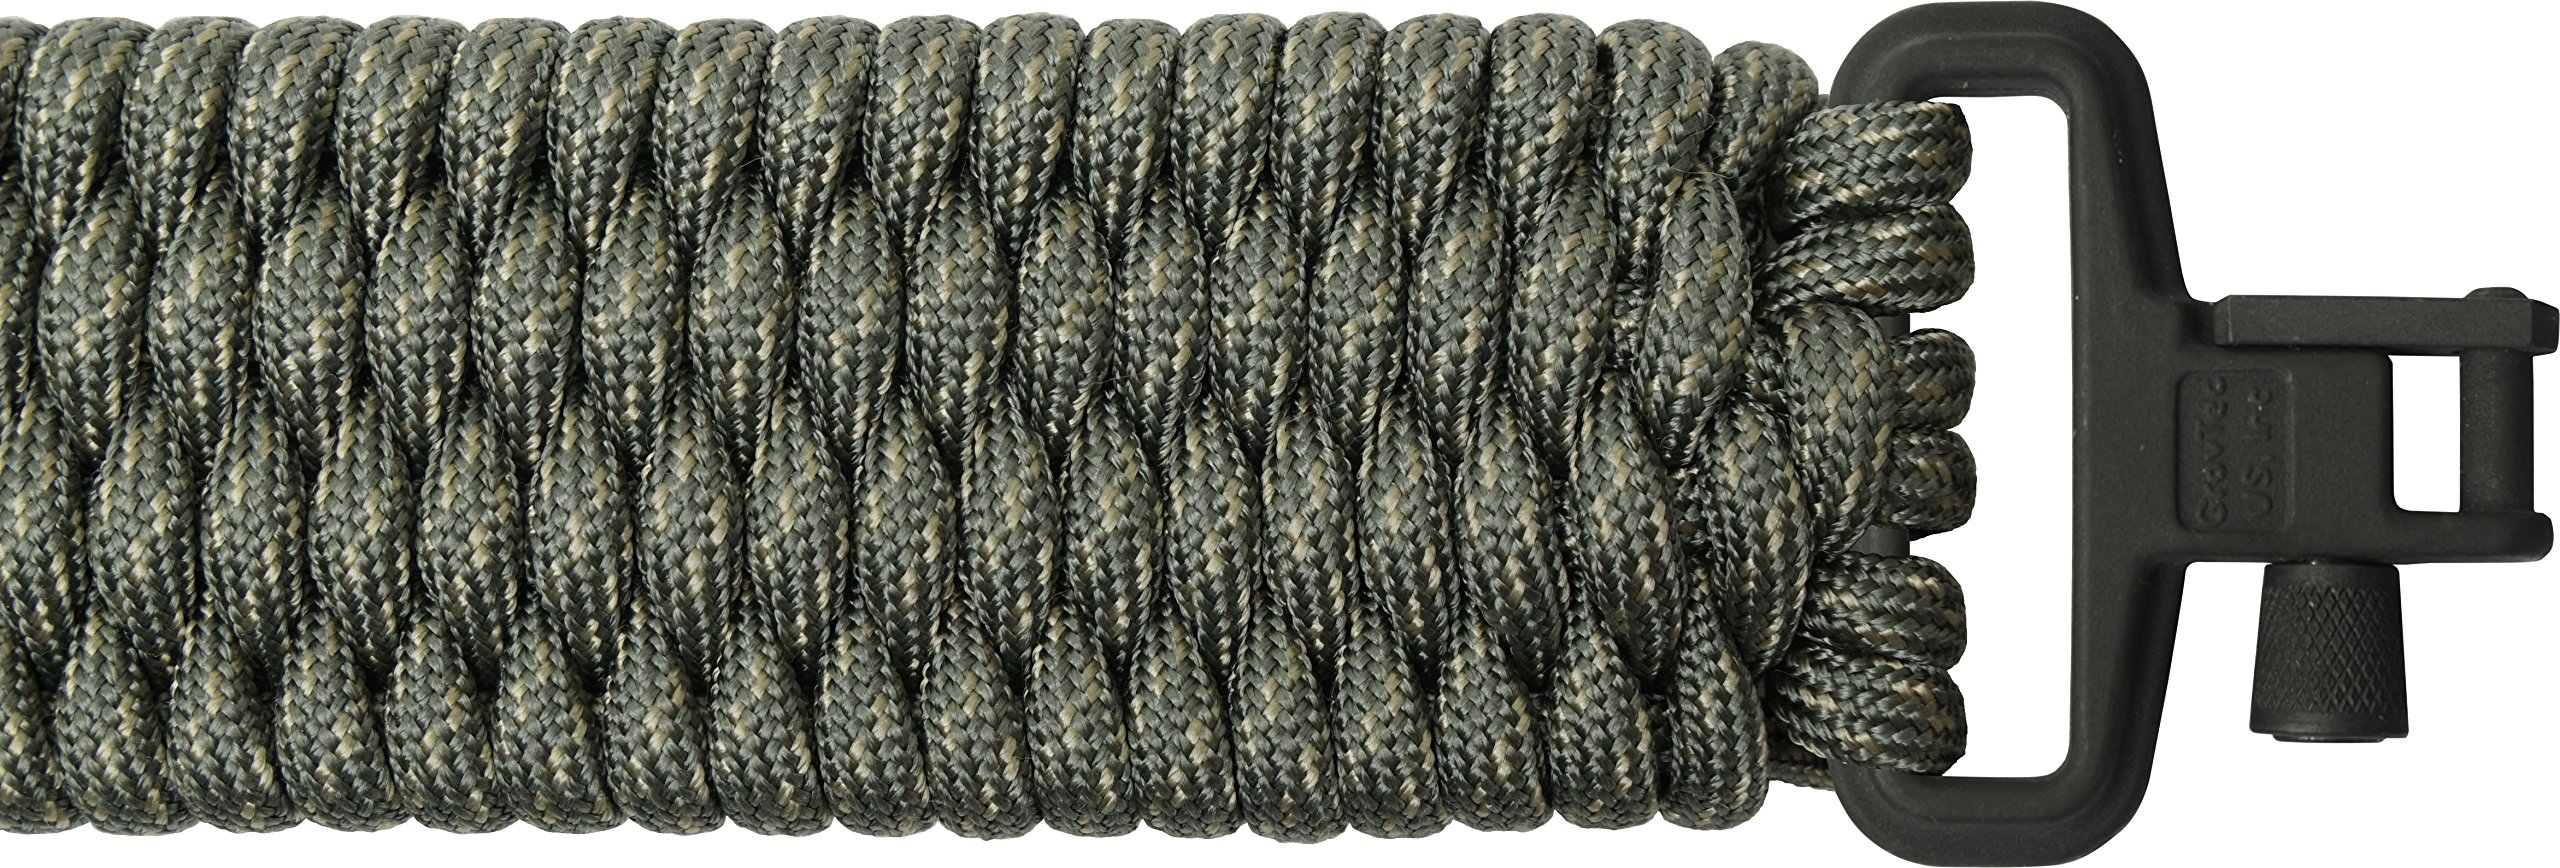 TOUGH-GRID Backbone(TM) Paracord Rifle Sling - Gun Sling/Rifle Sling - Handmade in The USA with Authentic Mil-Spec 750lb Type IV Paracord and Mil-Spec Swivels (BackBone70DGCBoa) by TOUGH-GRID (Image #1)